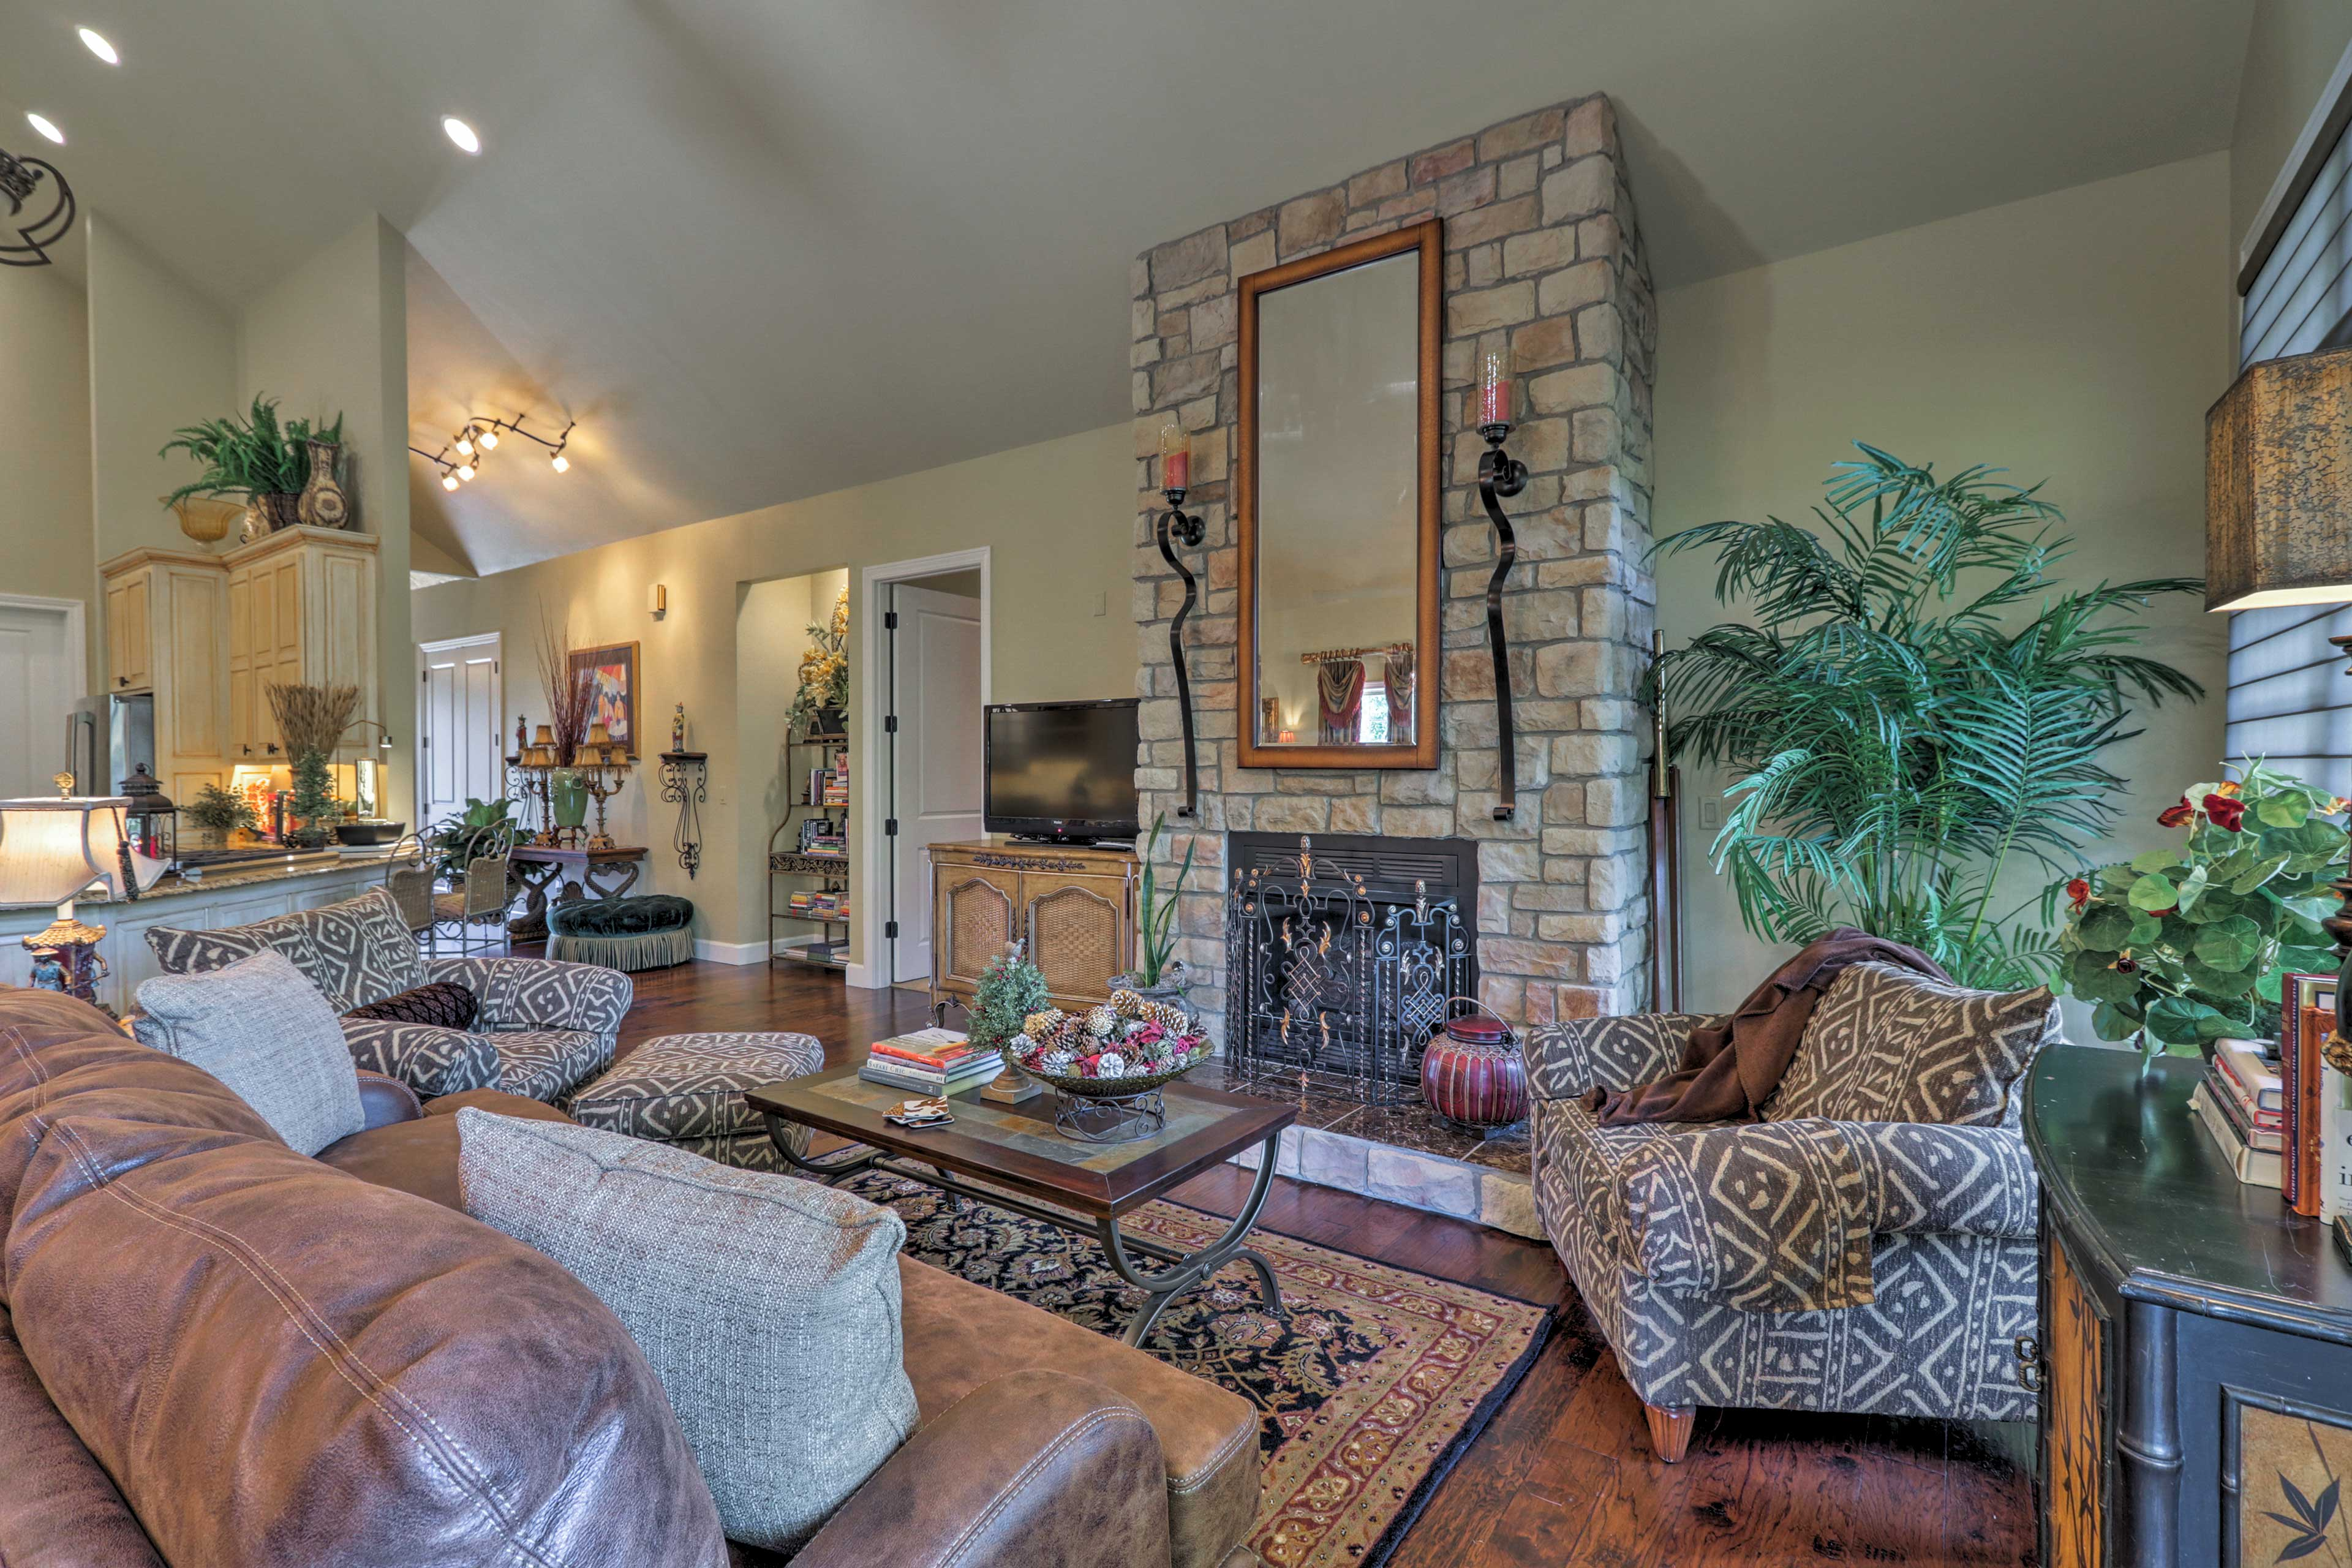 Turn on the gas fireplace and flat-screen satellite TV during downtime.